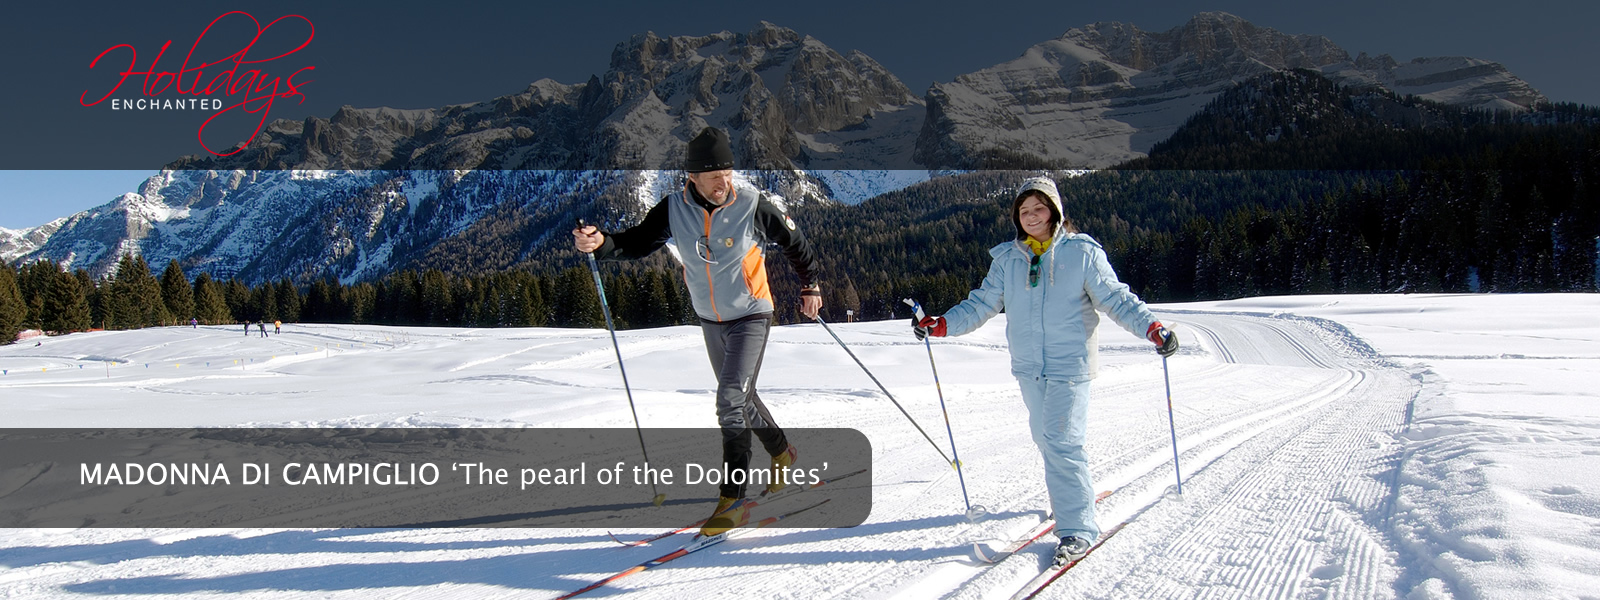 Cross Country Skiing in Madonna di Campiglio